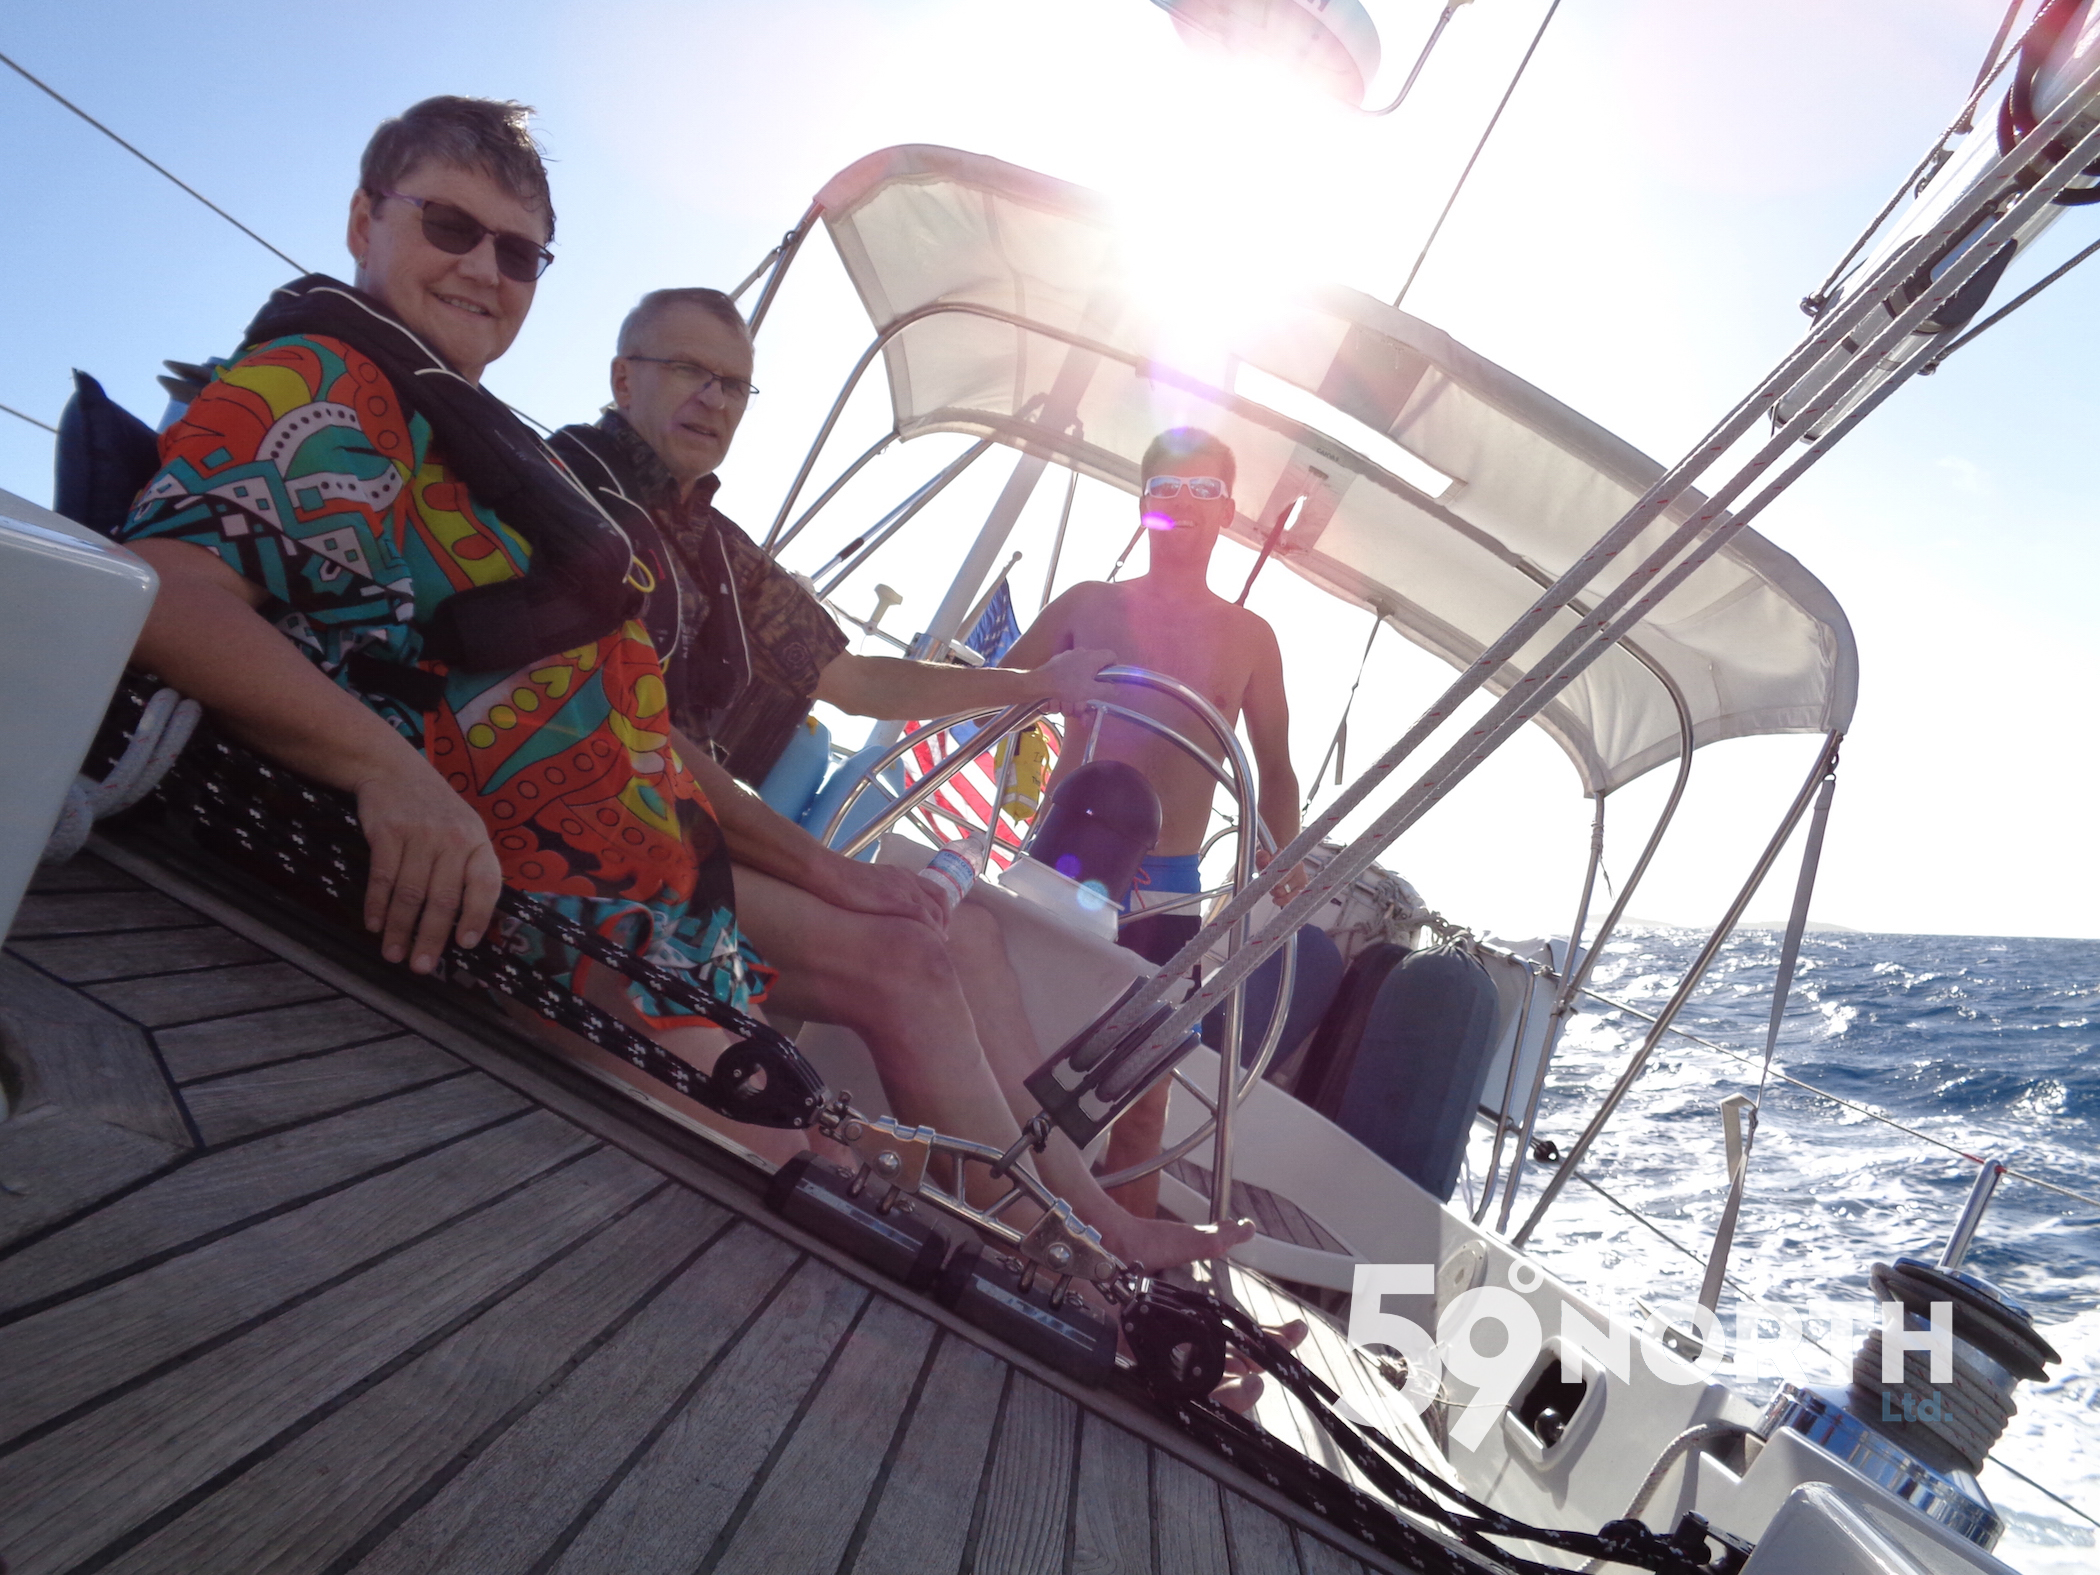 We started the New Year sailing in the Virgin Islands with Mia's parents. Jan 2016